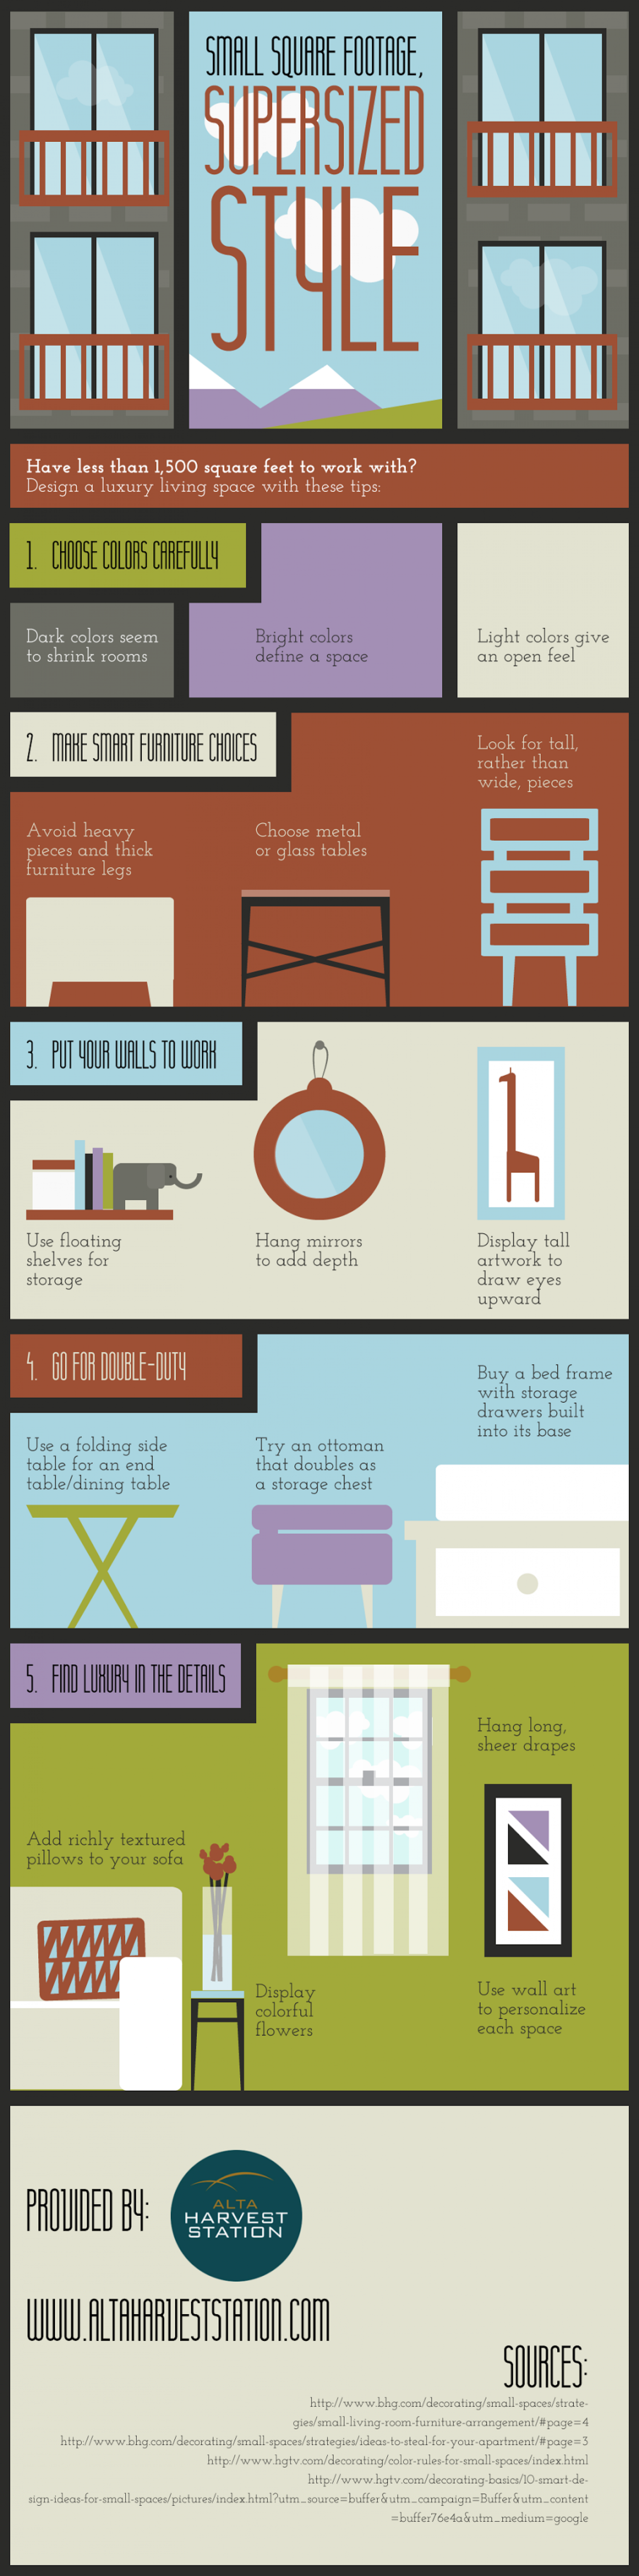 Small Square Footage, Supersized Style Infographic